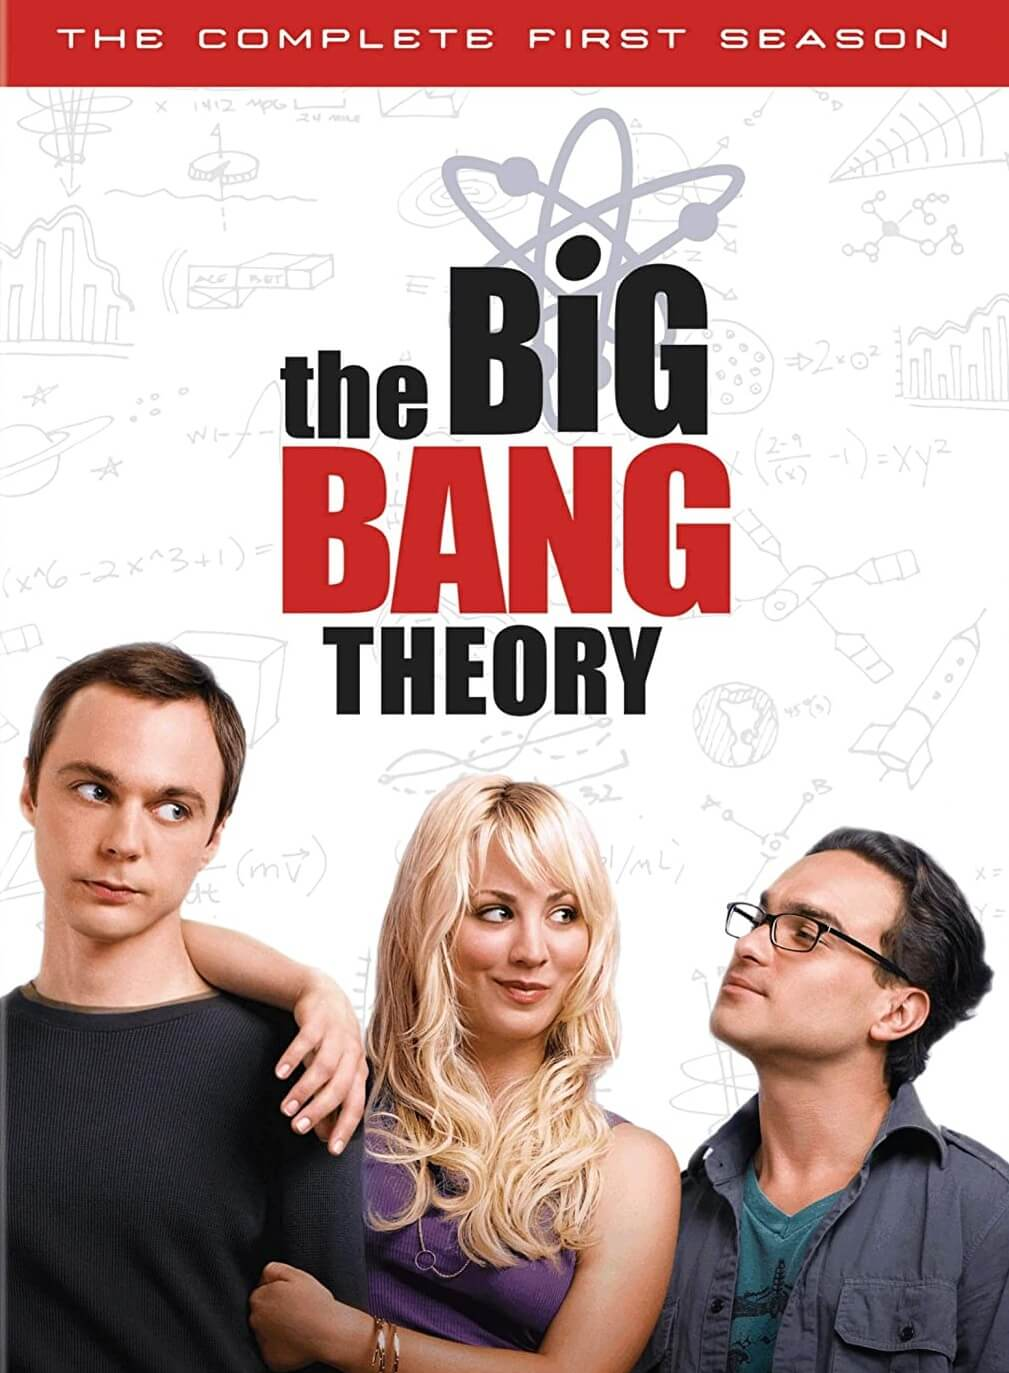 The Big Bang Theory S01 E09